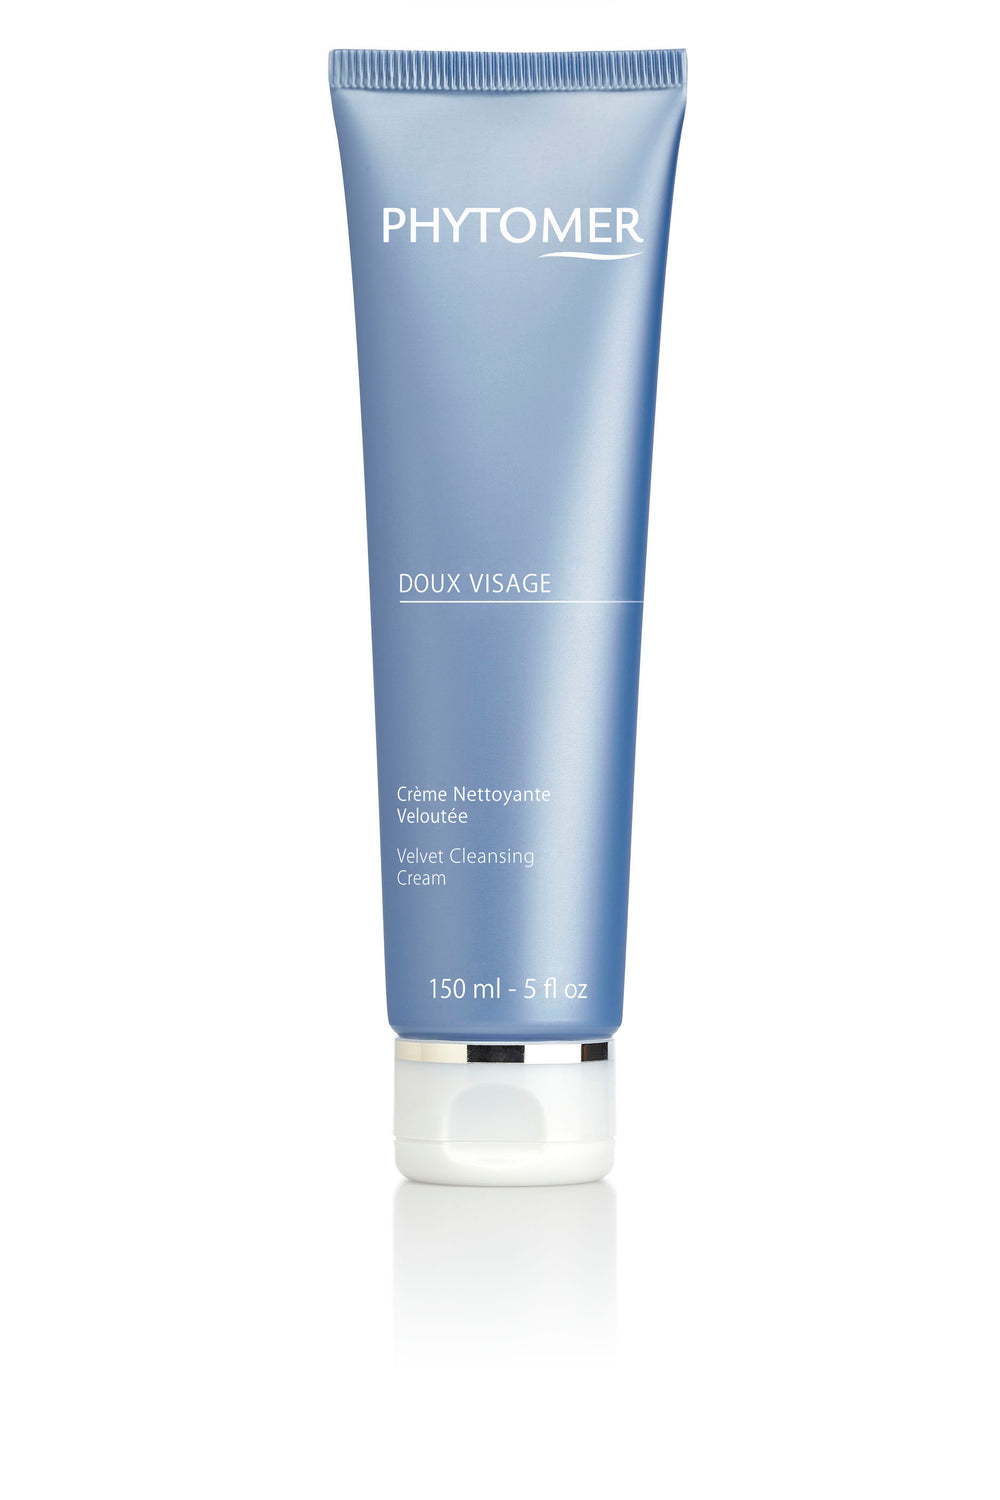 DOUX VISAGE   Velvet Cleansing Cream - 150ml